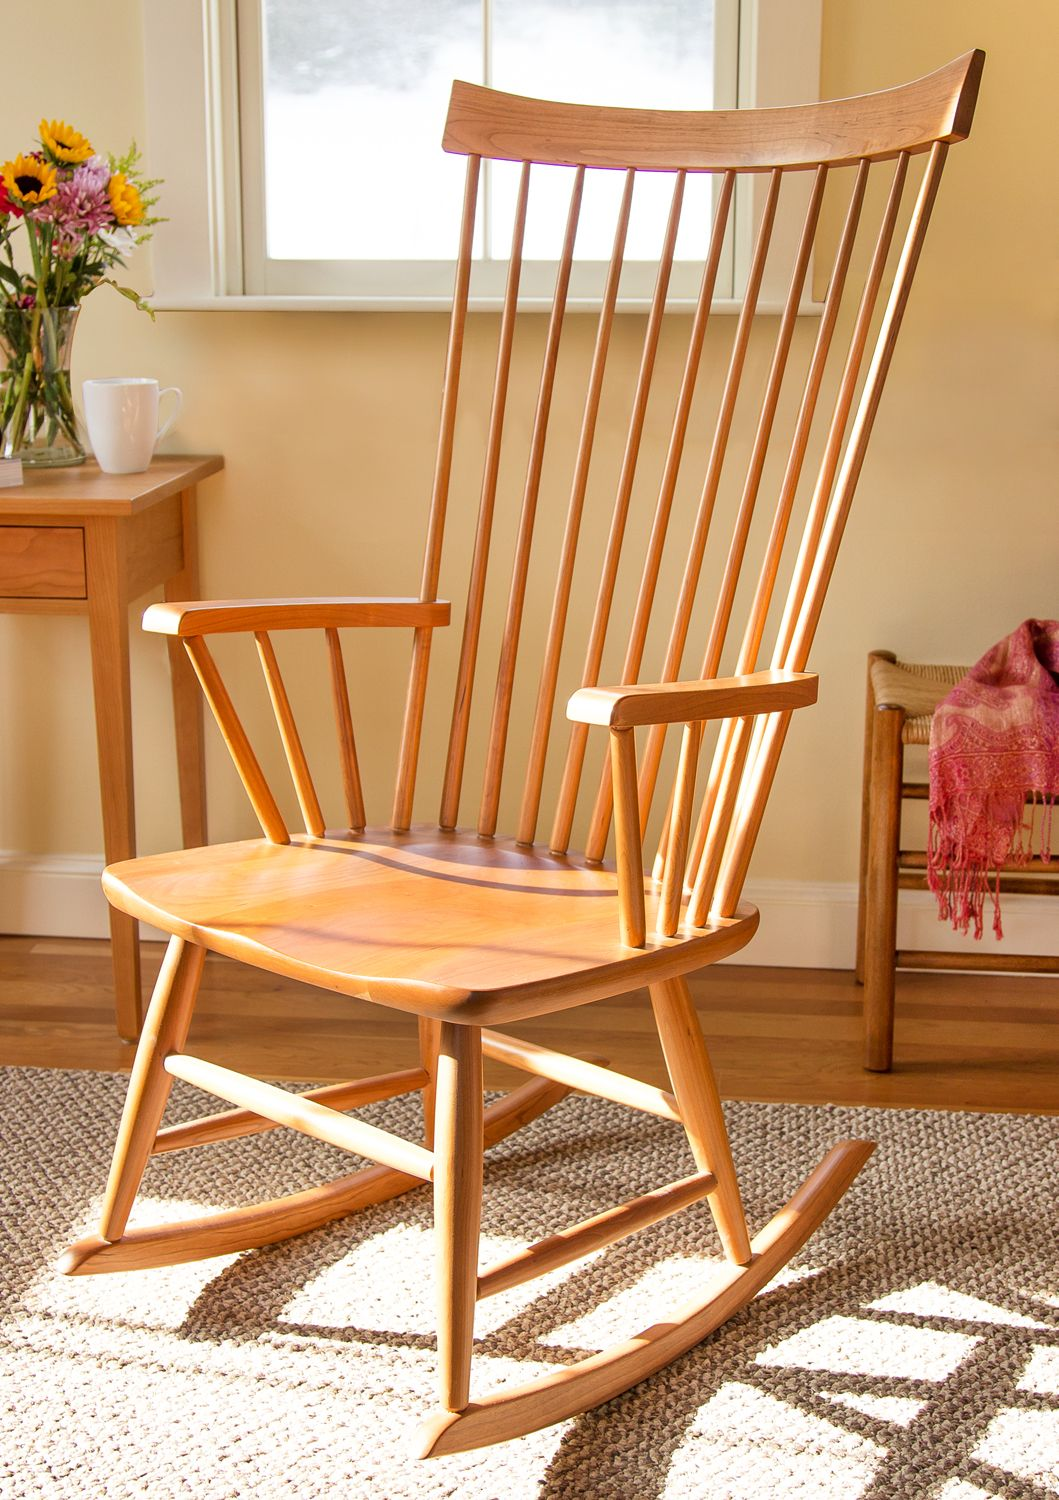 Windsor Style Rocking Chair, Cherry Wood Furniture. Made In Vermont By  Local Craftsmen.